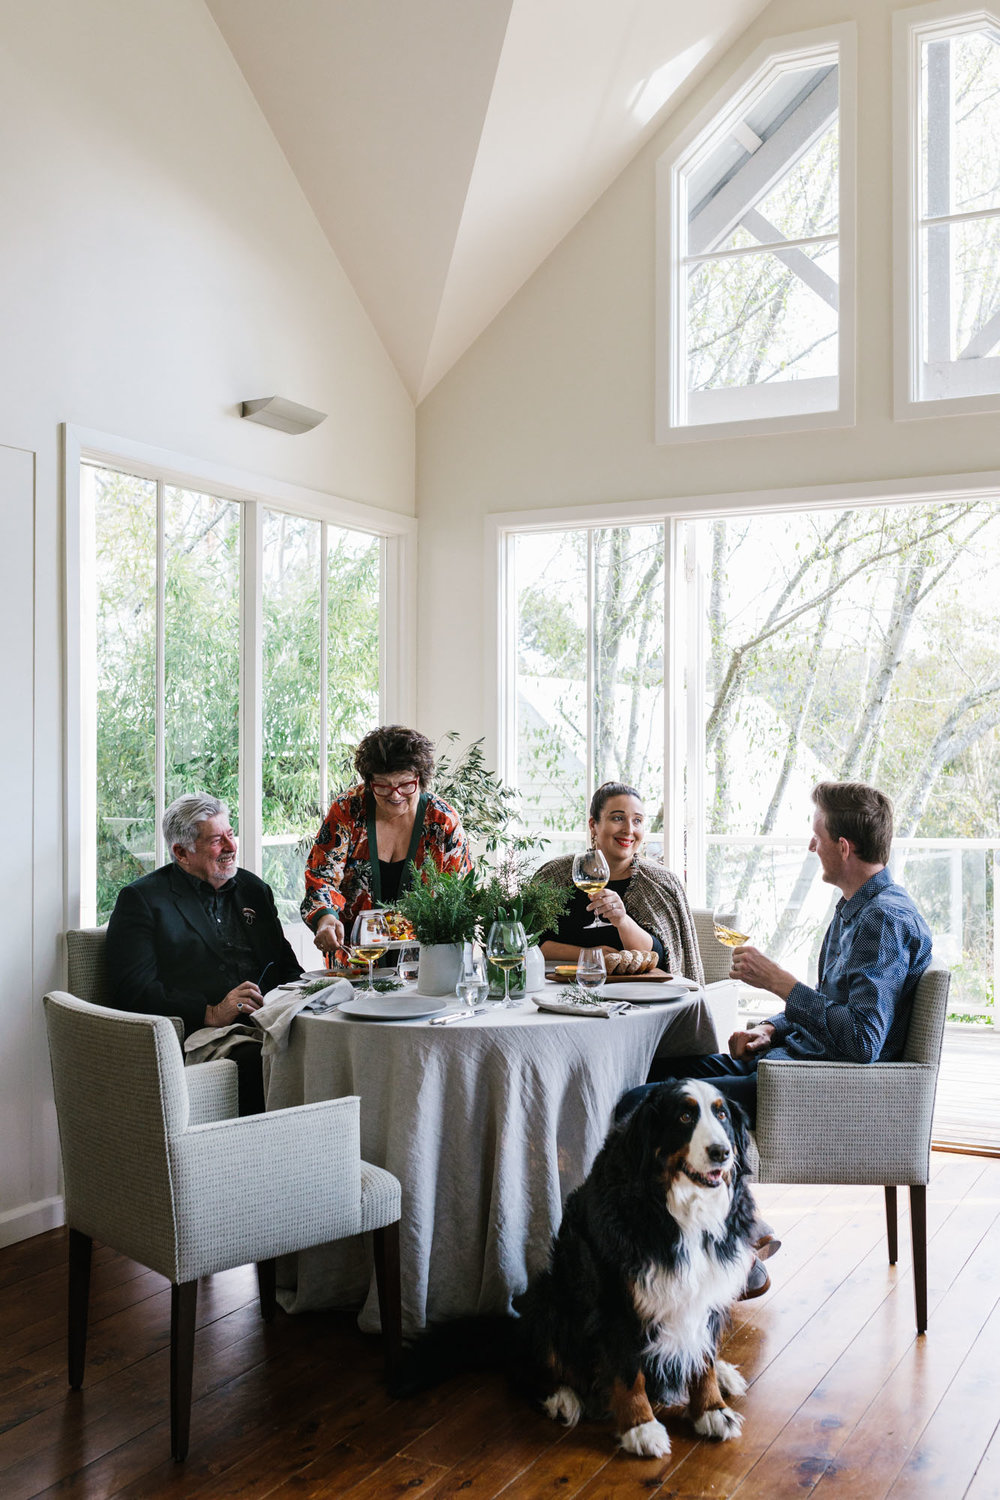 Christmas with Alla Wolf-Tasker at the Lakehouse, Daylesford for Australian House & Garden. Photography by Melbourne food photographer Marnie Hawson and styled by Inside Story.